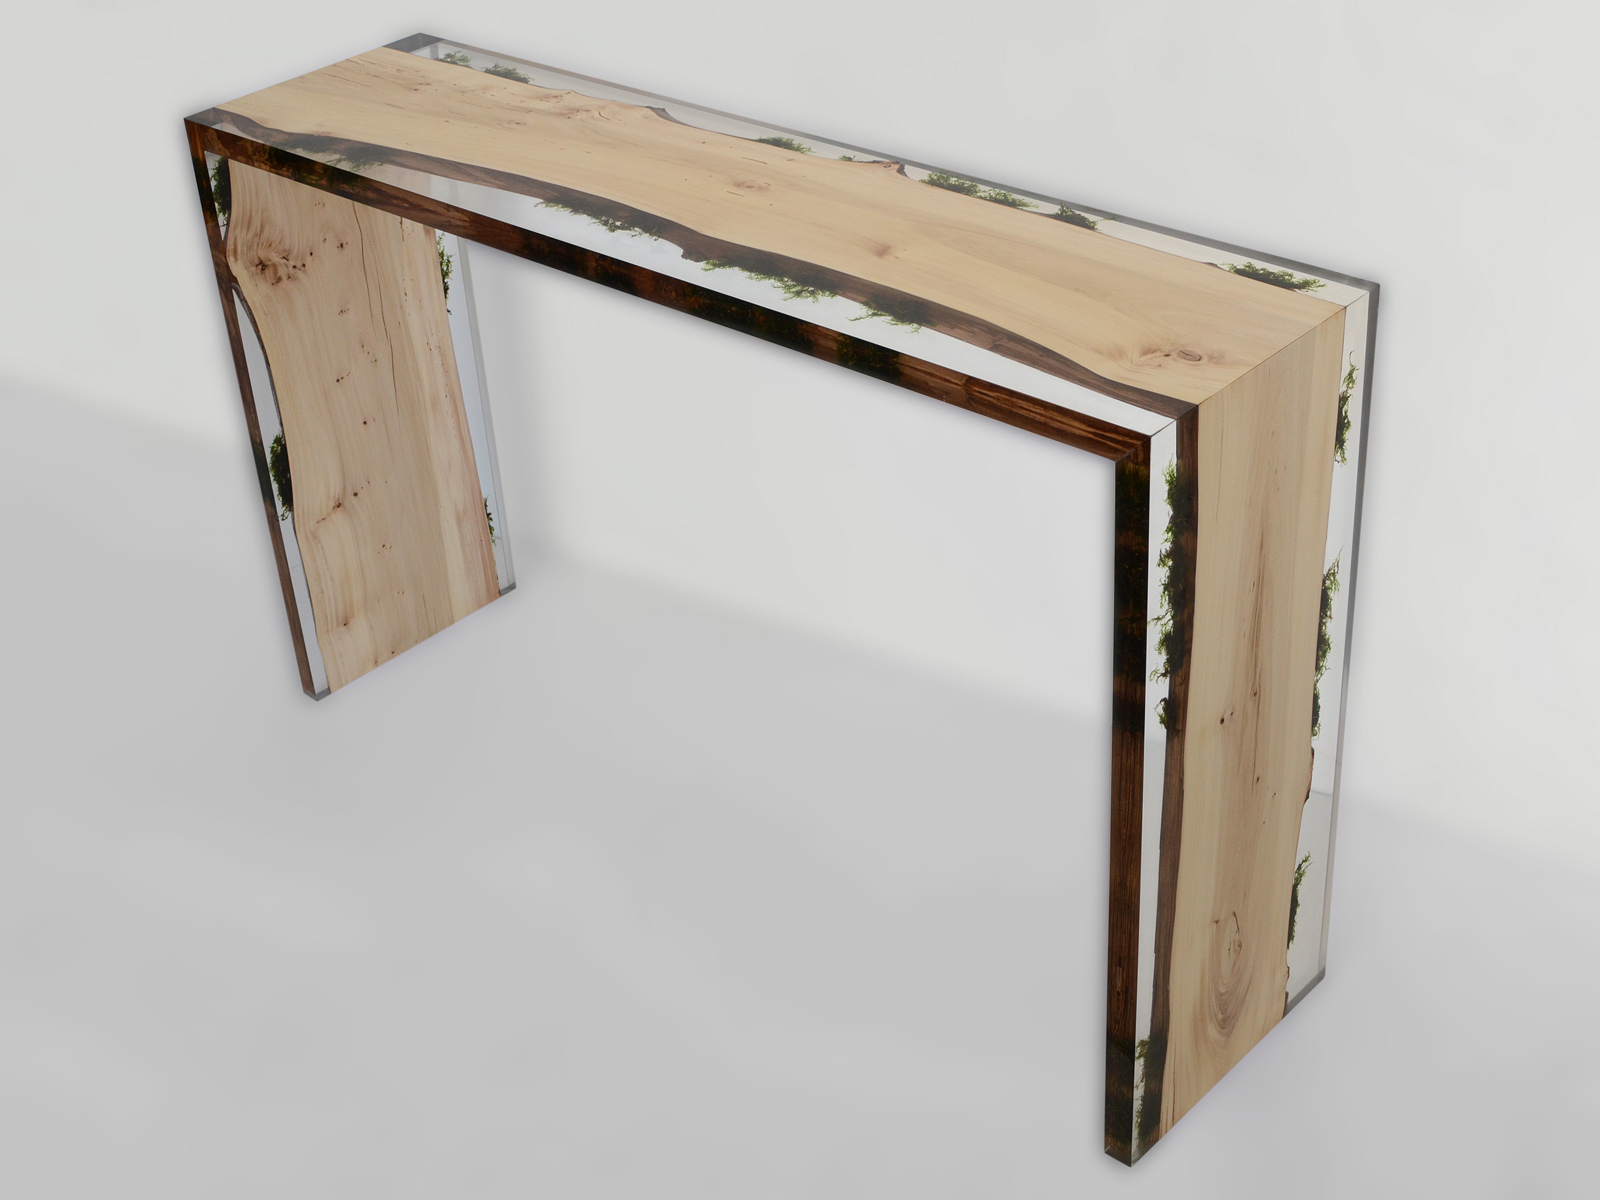 Alcarol Undergrowth Collection - Trail Console sans stool - 3